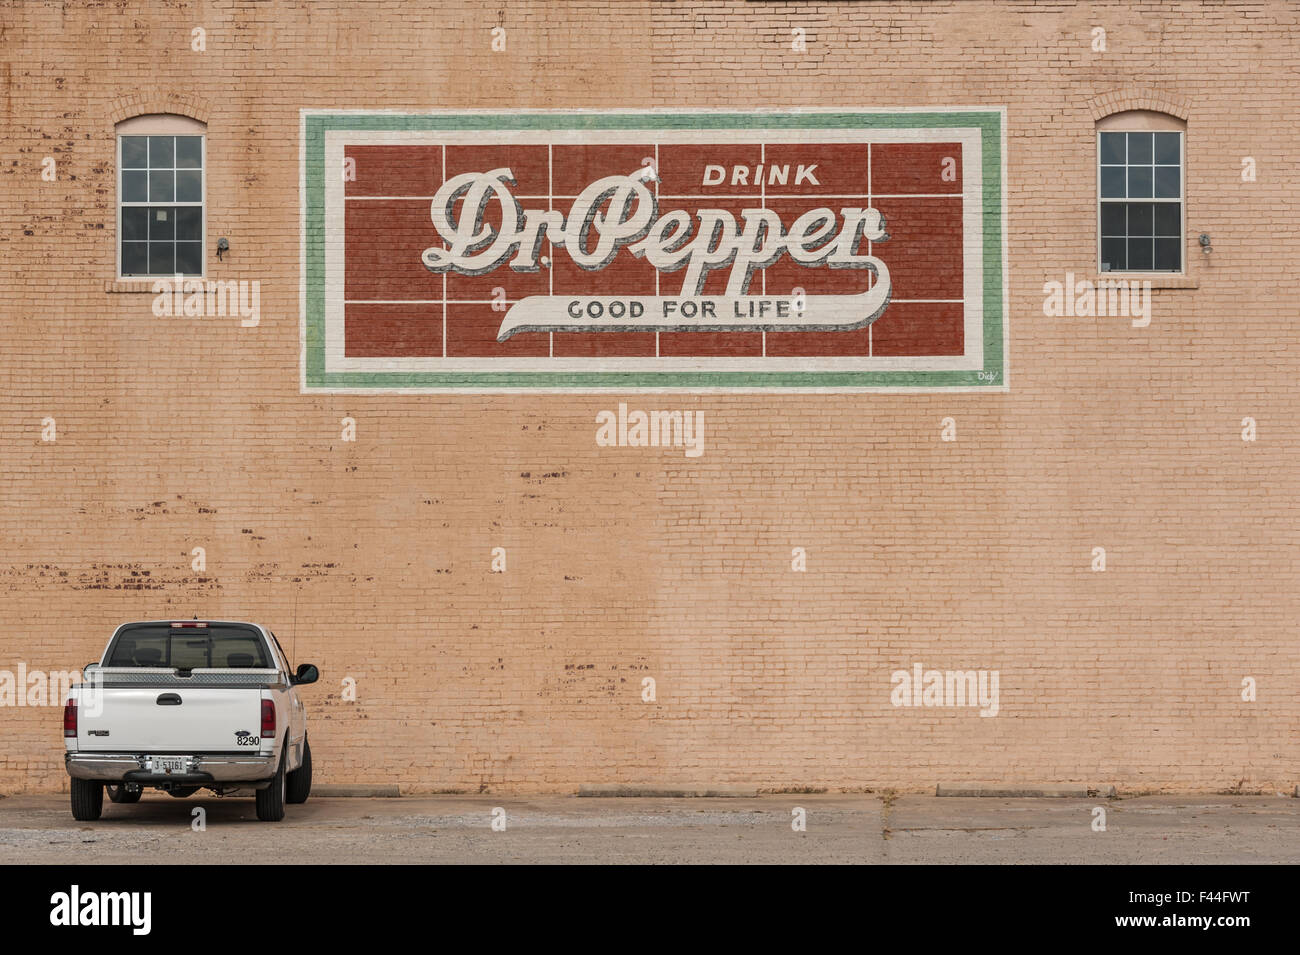 drink dr pepper vintage wall mural on painted brick building in drink dr pepper vintage wall mural on painted brick building in muskogee oklahoma usa